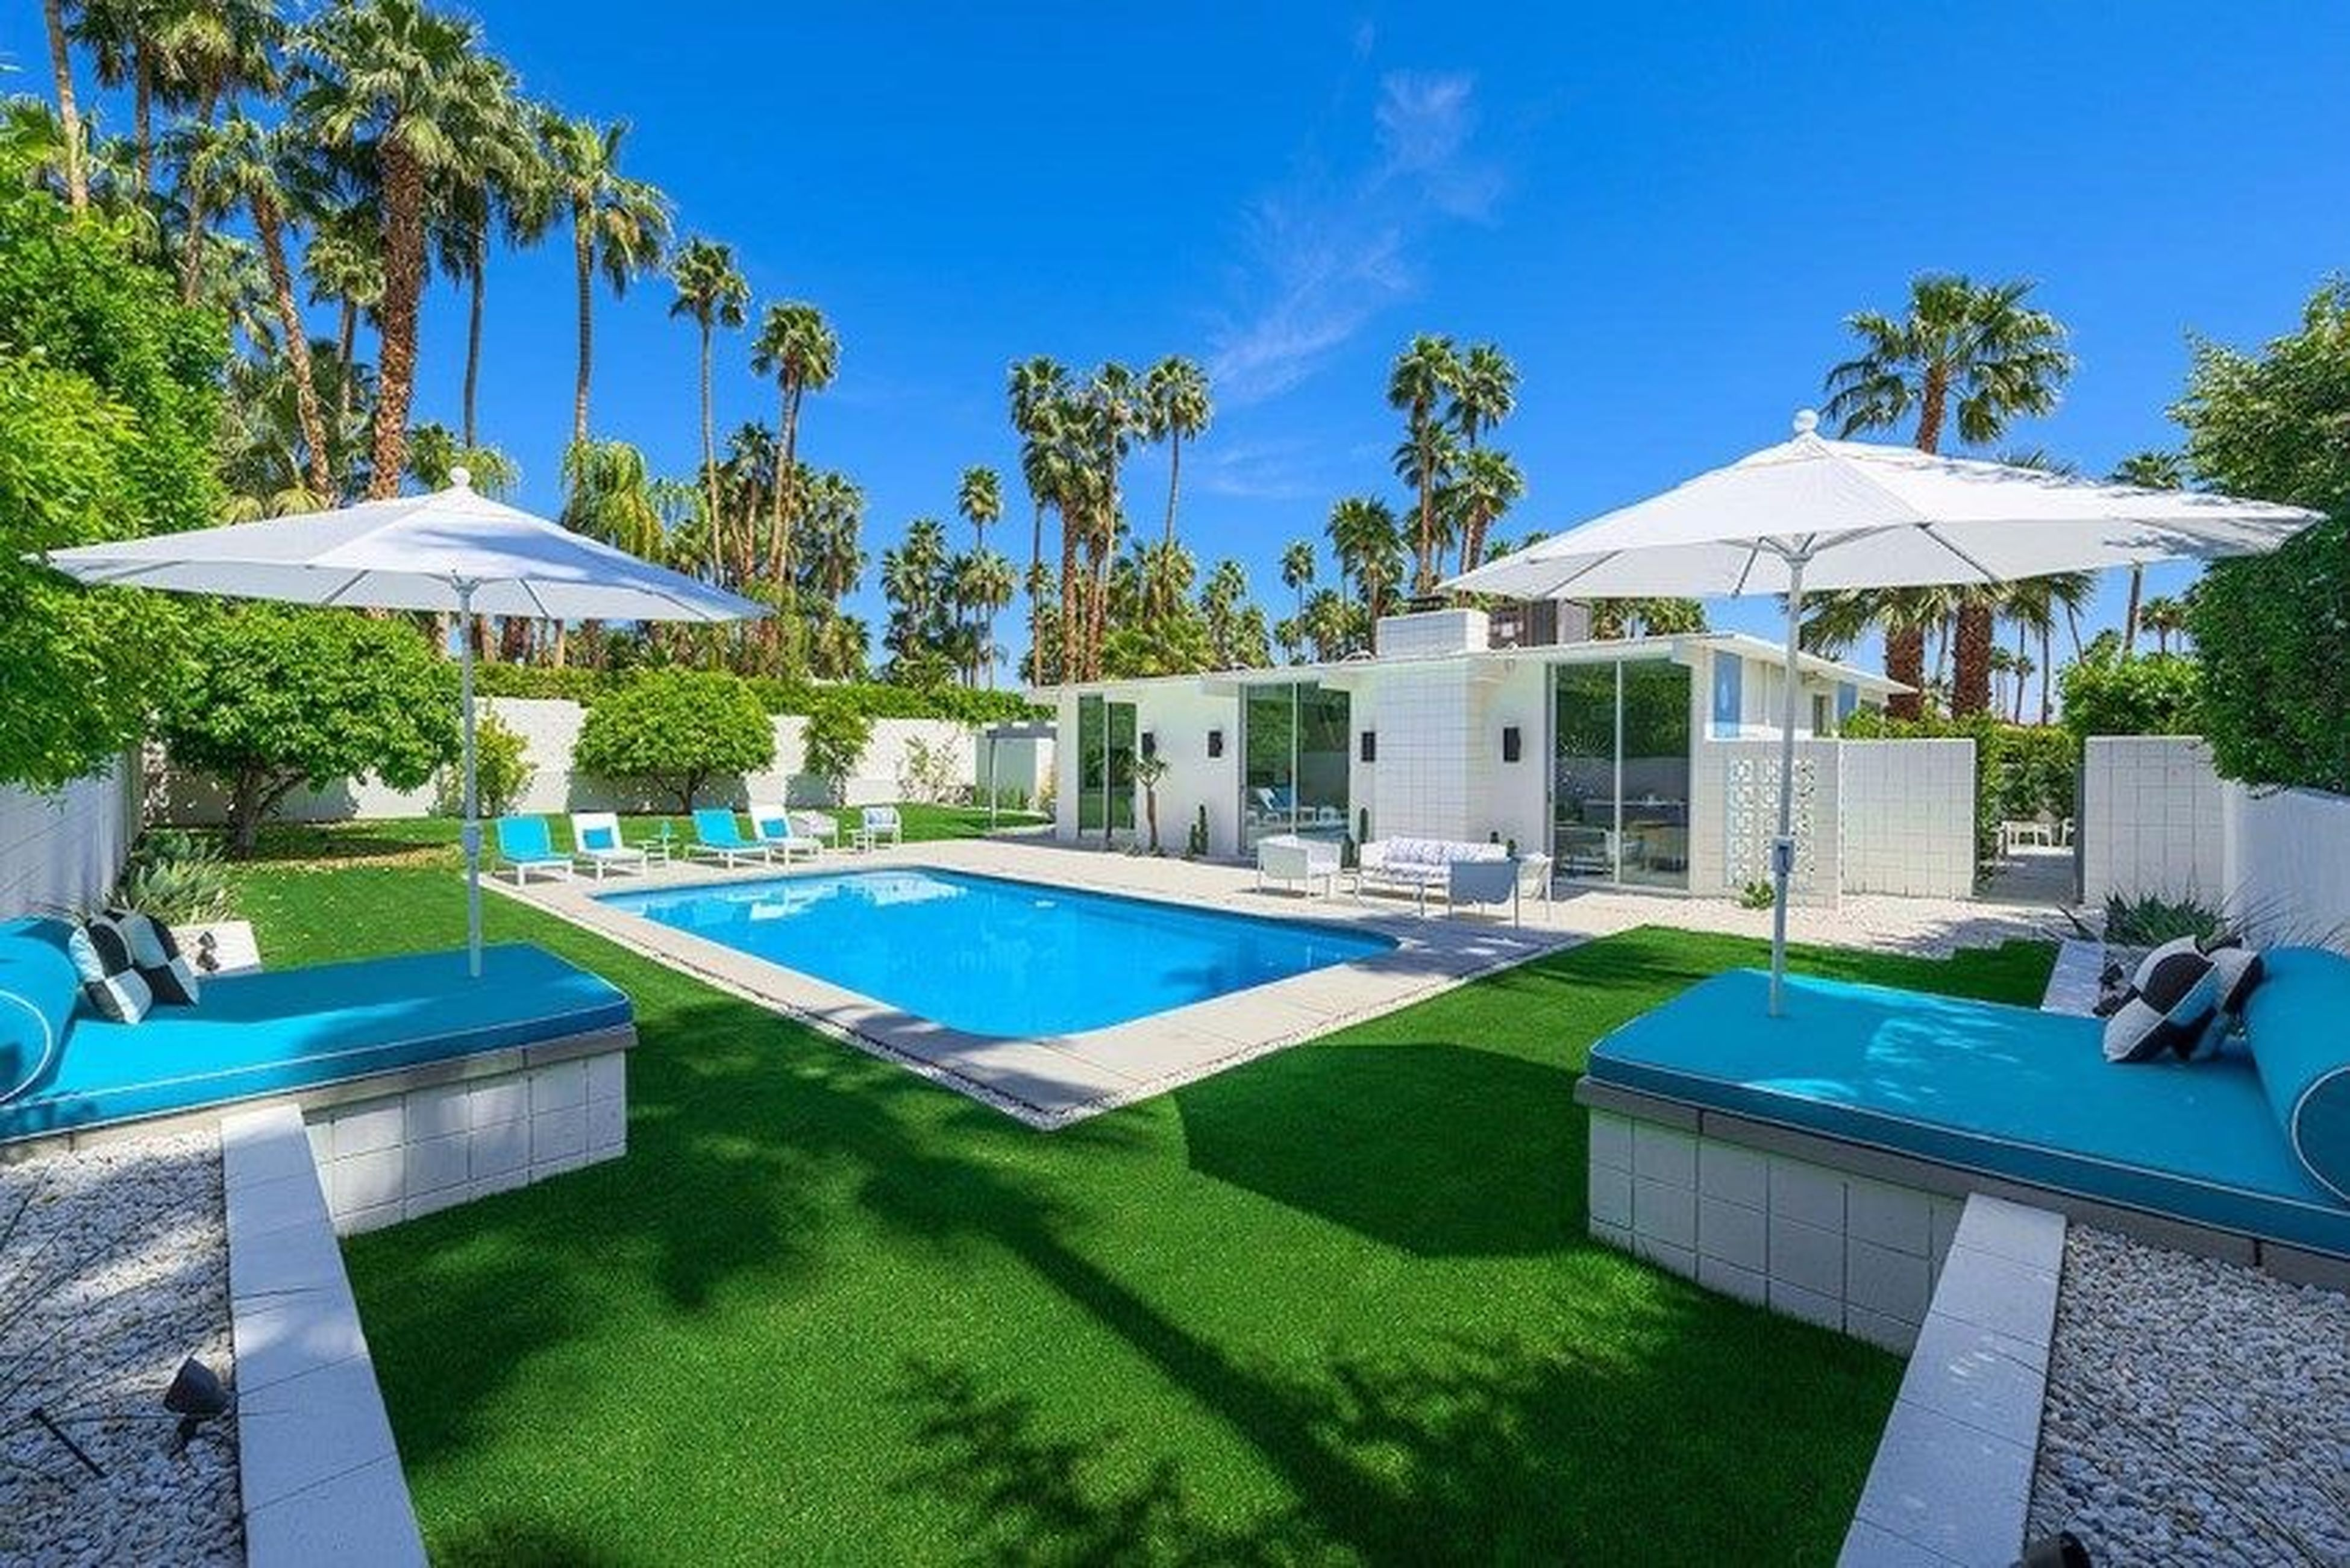 tree, swimming pool, blue, building exterior, built structure, architecture, palm tree, sunlight, sky, green color, tourist resort, water, shadow, grass, chair, day, house, lawn, growth, outdoors